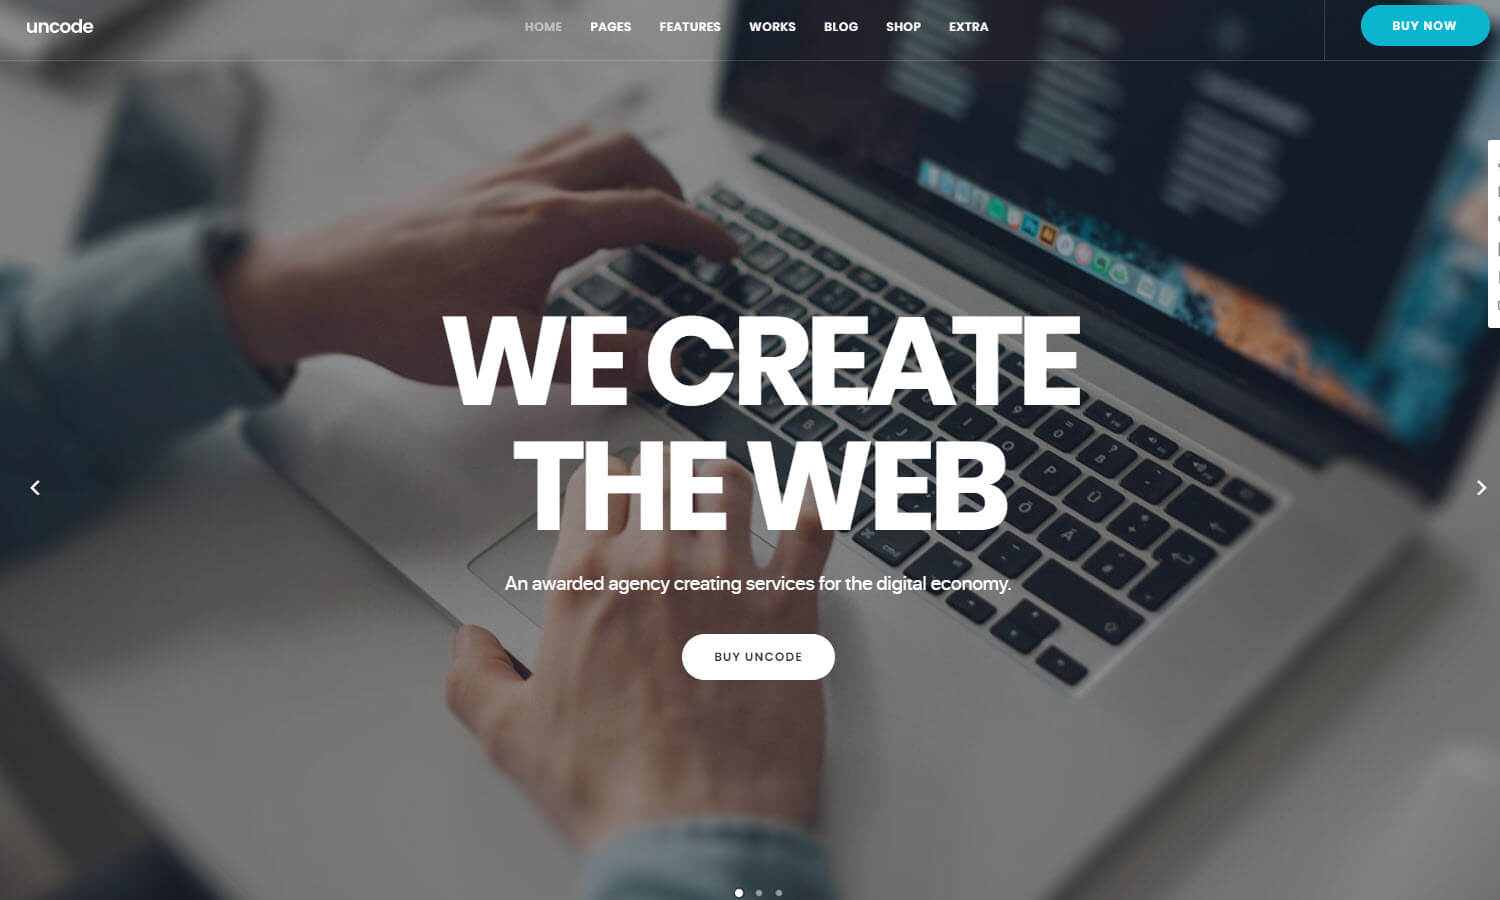 Uncode screenshot